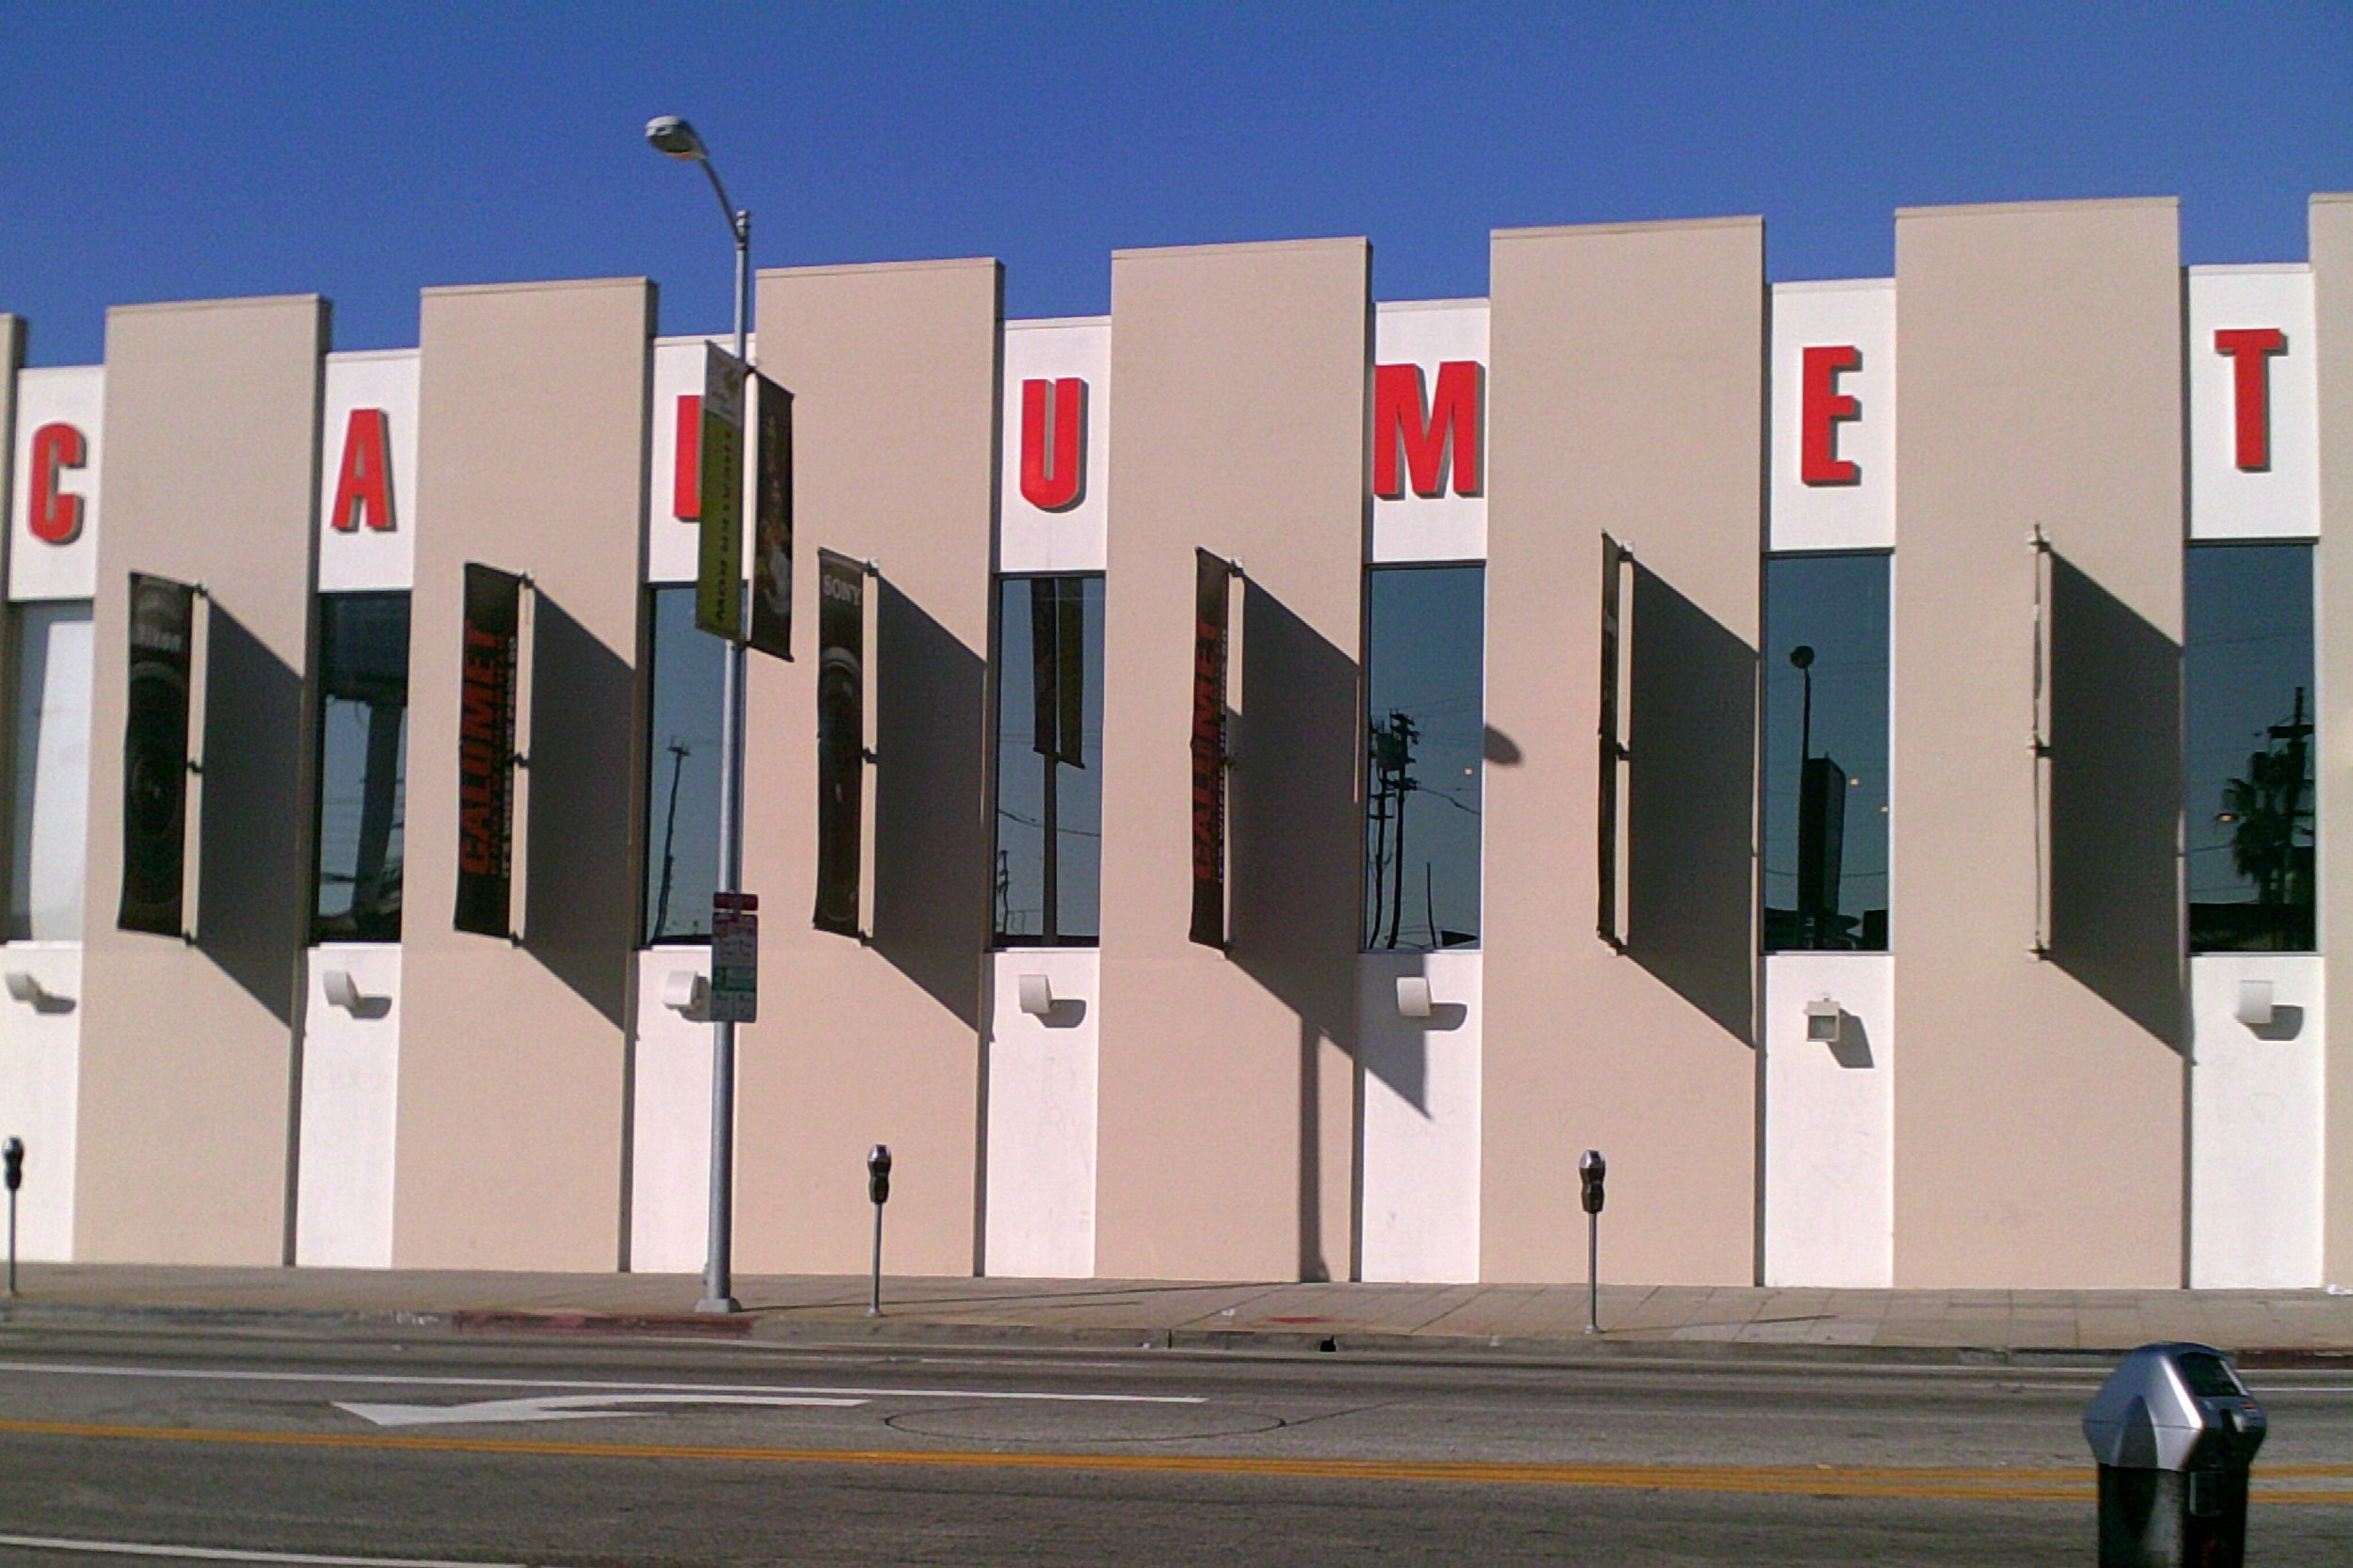 CALUMET PHOTO-GRAPHIC SHOWROOM AND WAREHOUSE - Los Angeles, CASingle story structure of 15,900 square feet with CMU bearing walls and steel joist roof.